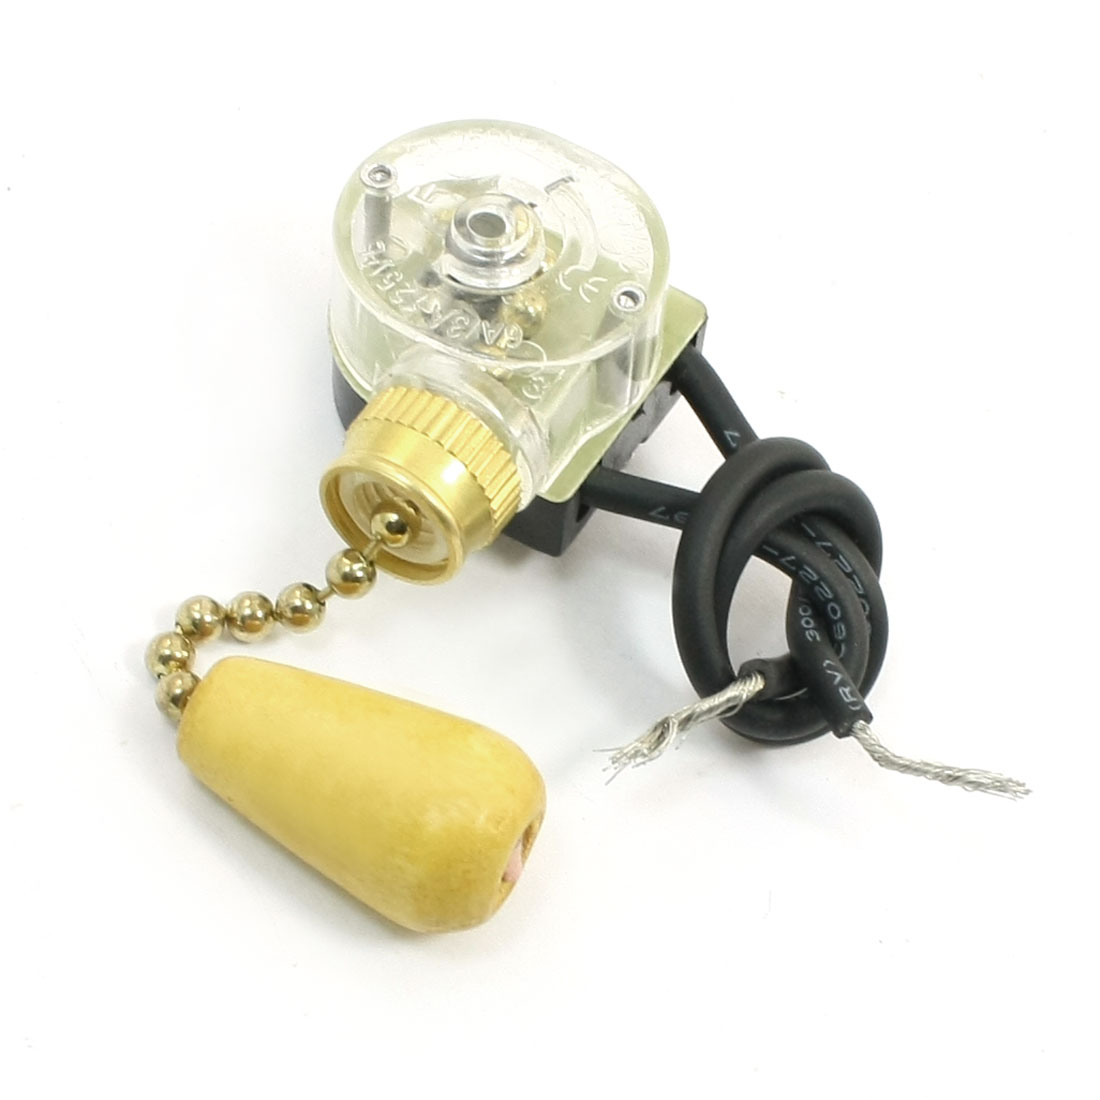 Unique Bargains 3a 250vac Latching Action Ceiling Fan Two Wires Wiring Fans In Series Light Pull Chain Switch